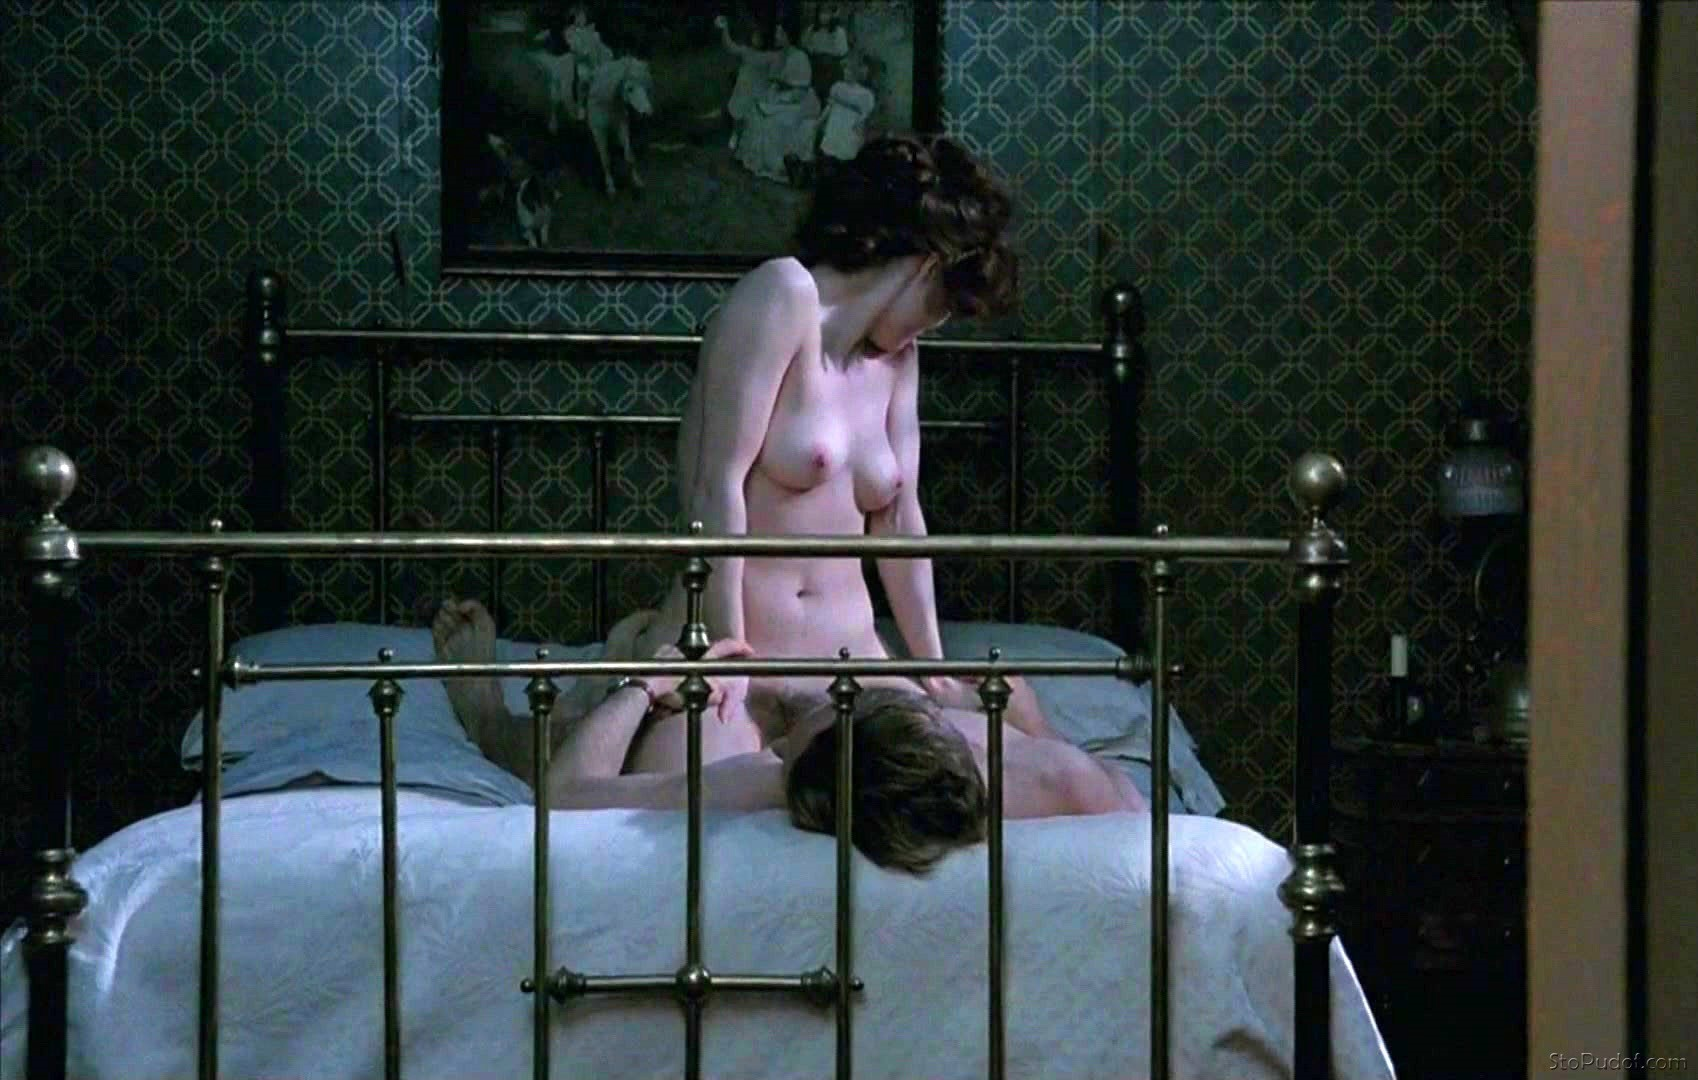 Helena Bonham Carter leaked nude photo uncensored - UkPhotoSafari